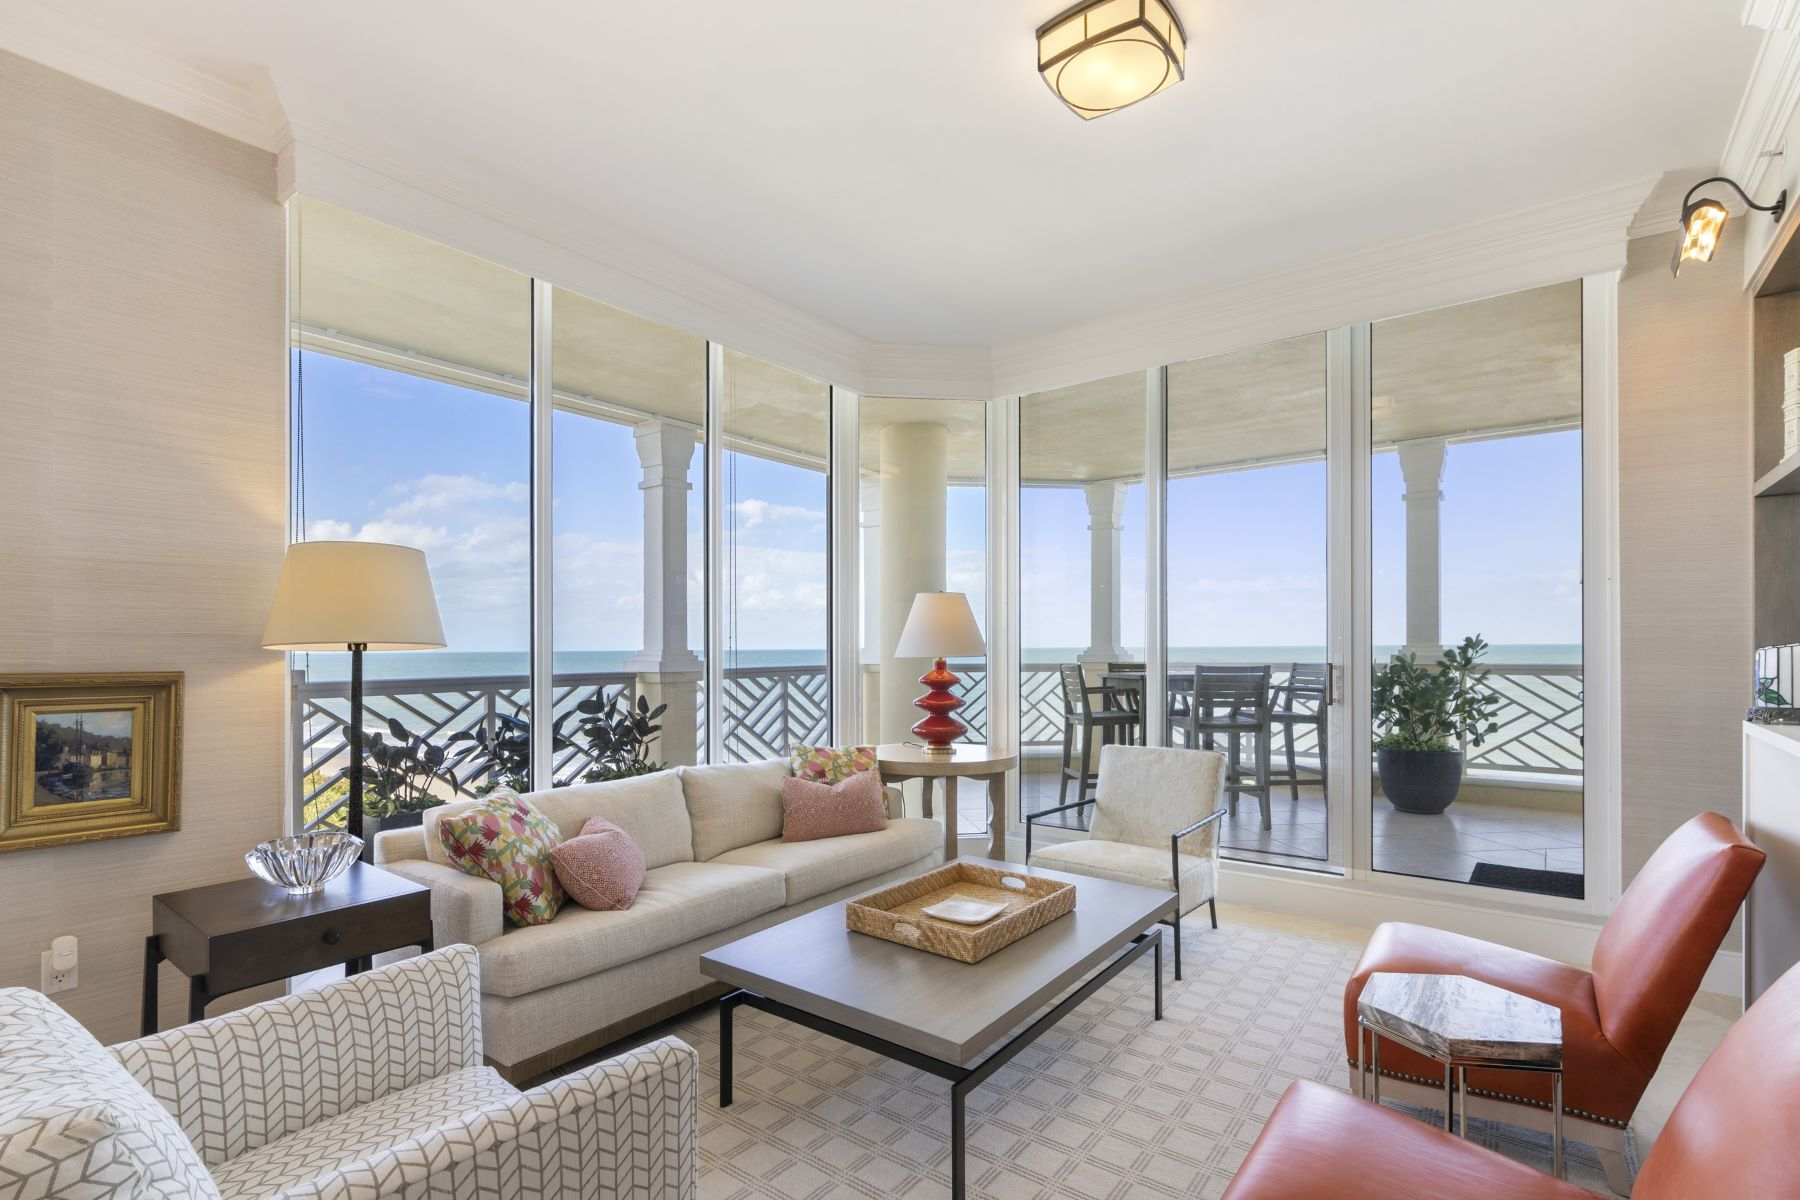 Property for Sale at Spectacular Oceanfront Penthouse 200 E Sea Colony Drive, PH-D Indian River Shores, Florida 32963 United States